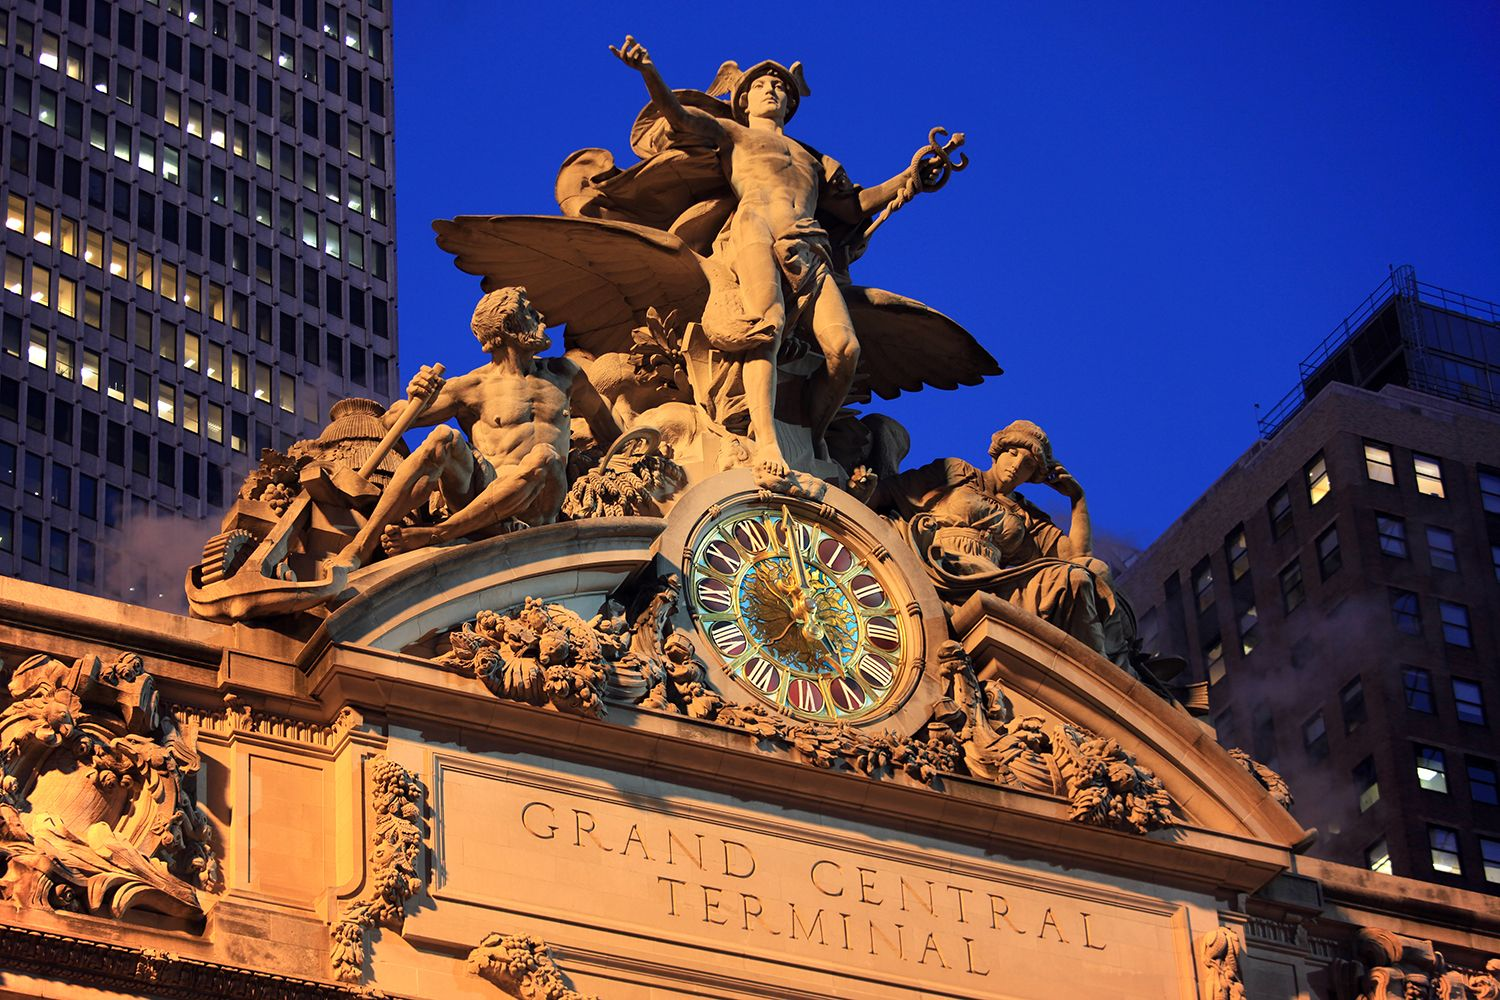 Grand Central Terminal (outside)